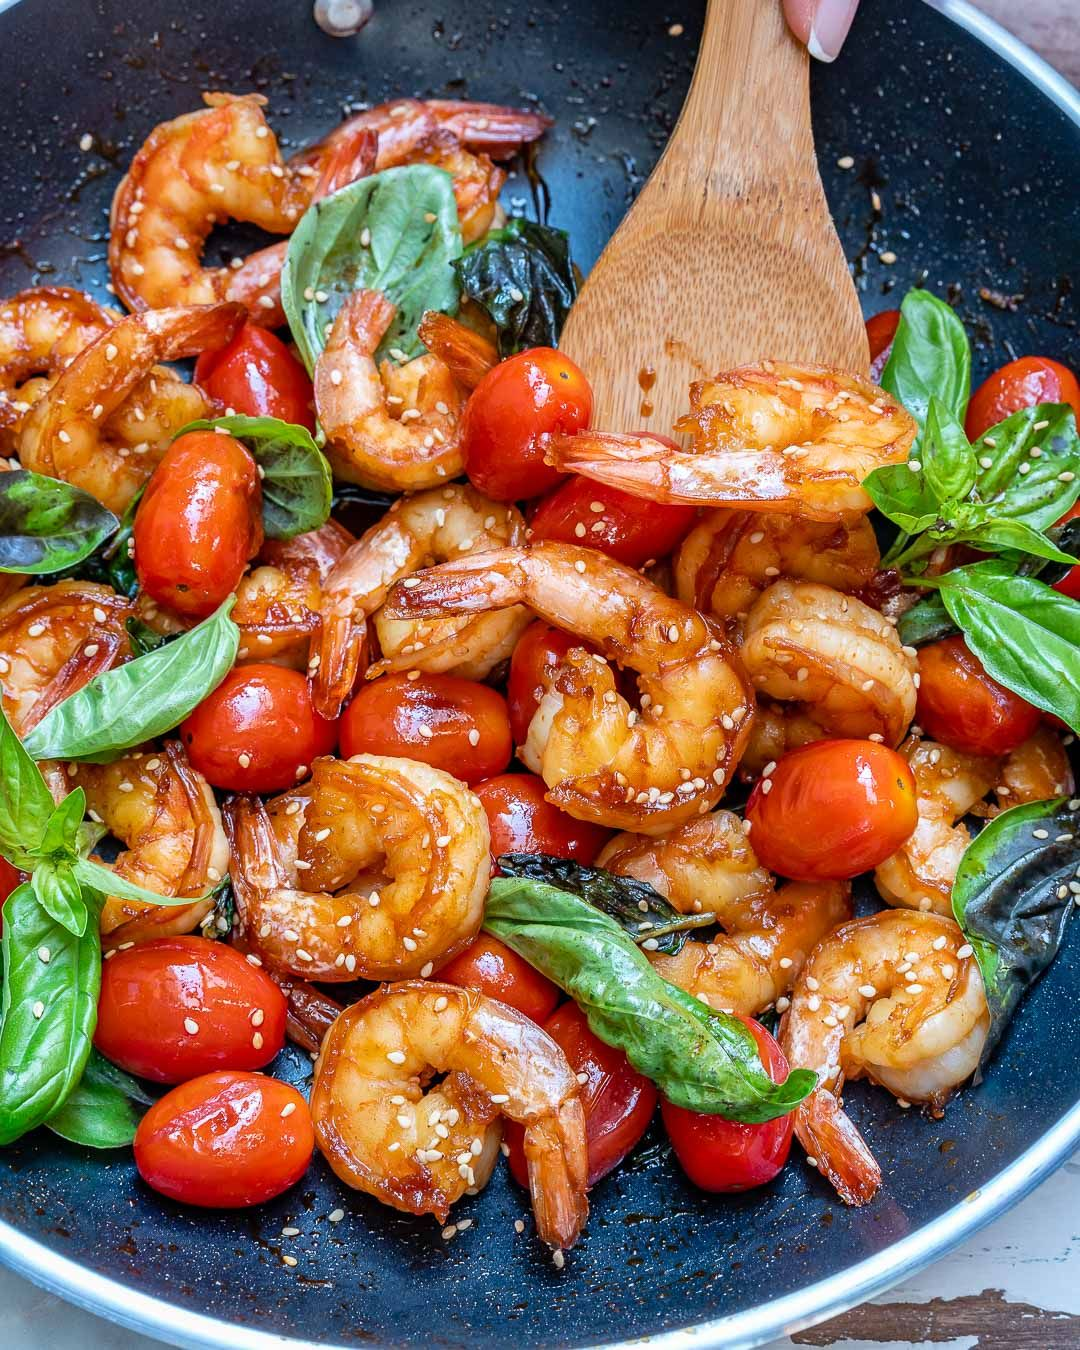 Easy Shrimp +Tomato + Basil Stir Fry for Clean Eats!